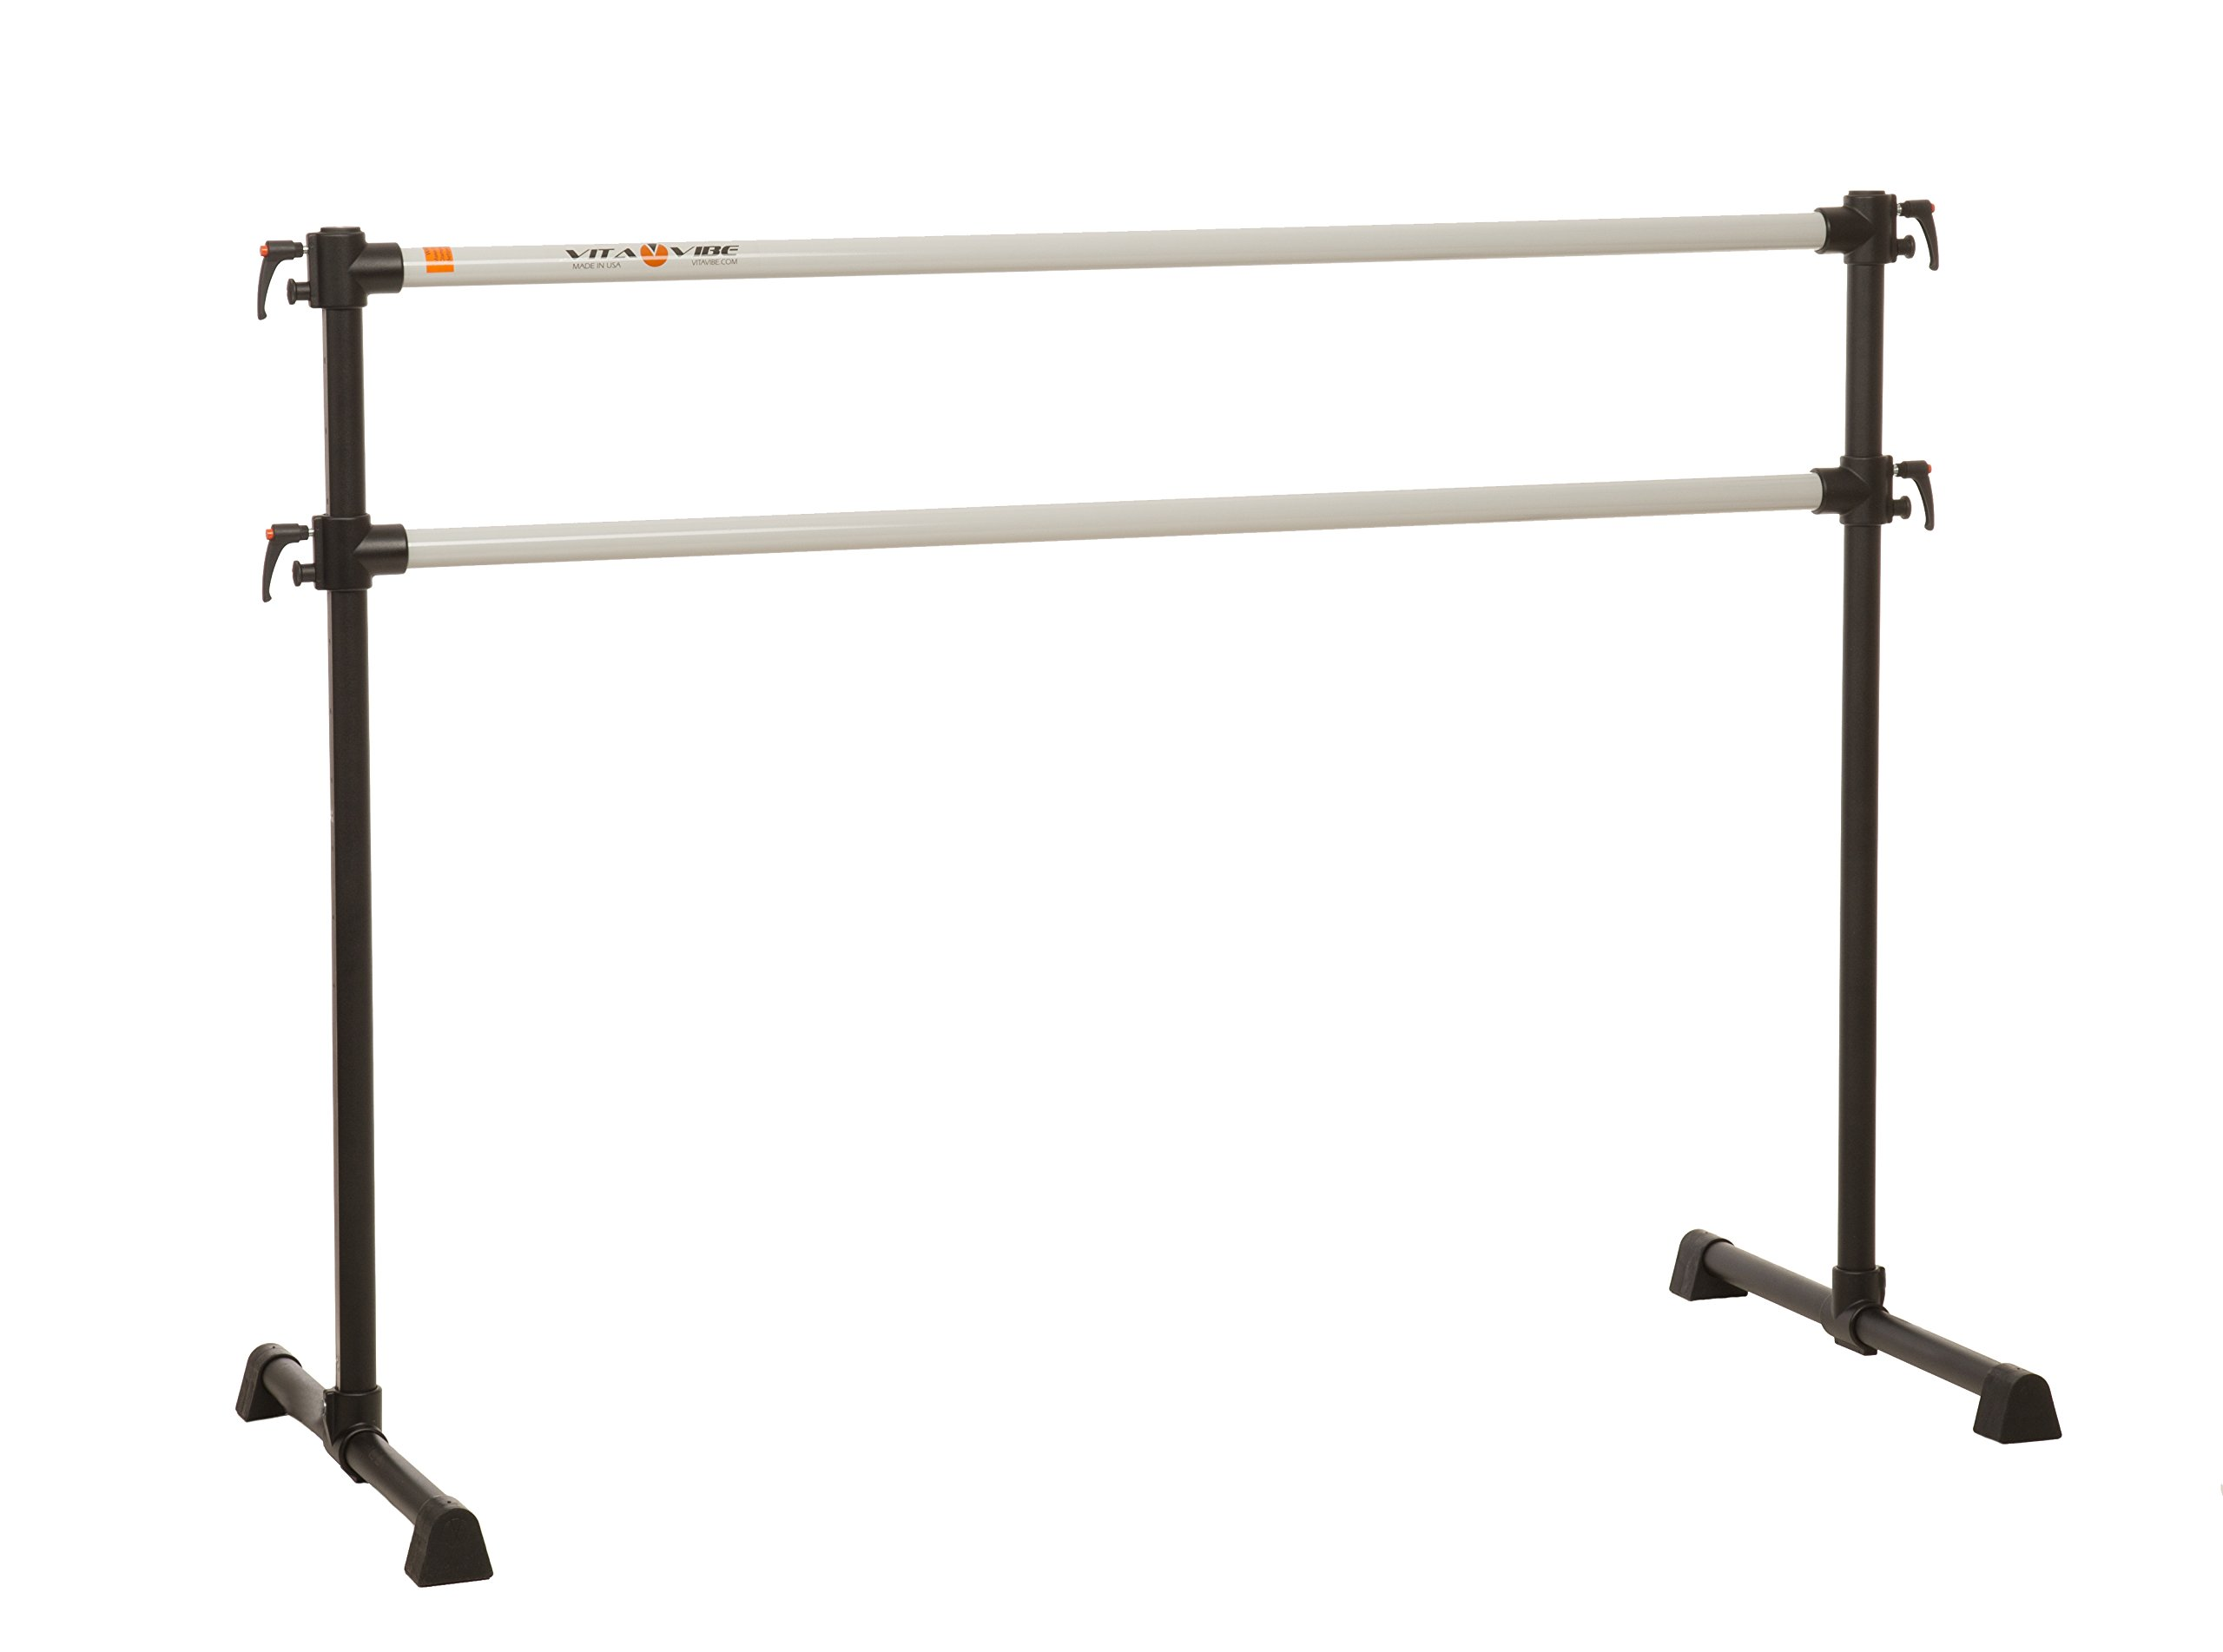 Vita Vibe Ballet Barre - PBD96 8ft Portable DOUBLE Bar - Freestanding Stretch/Dance Bar - Vita Vibe - USA Made